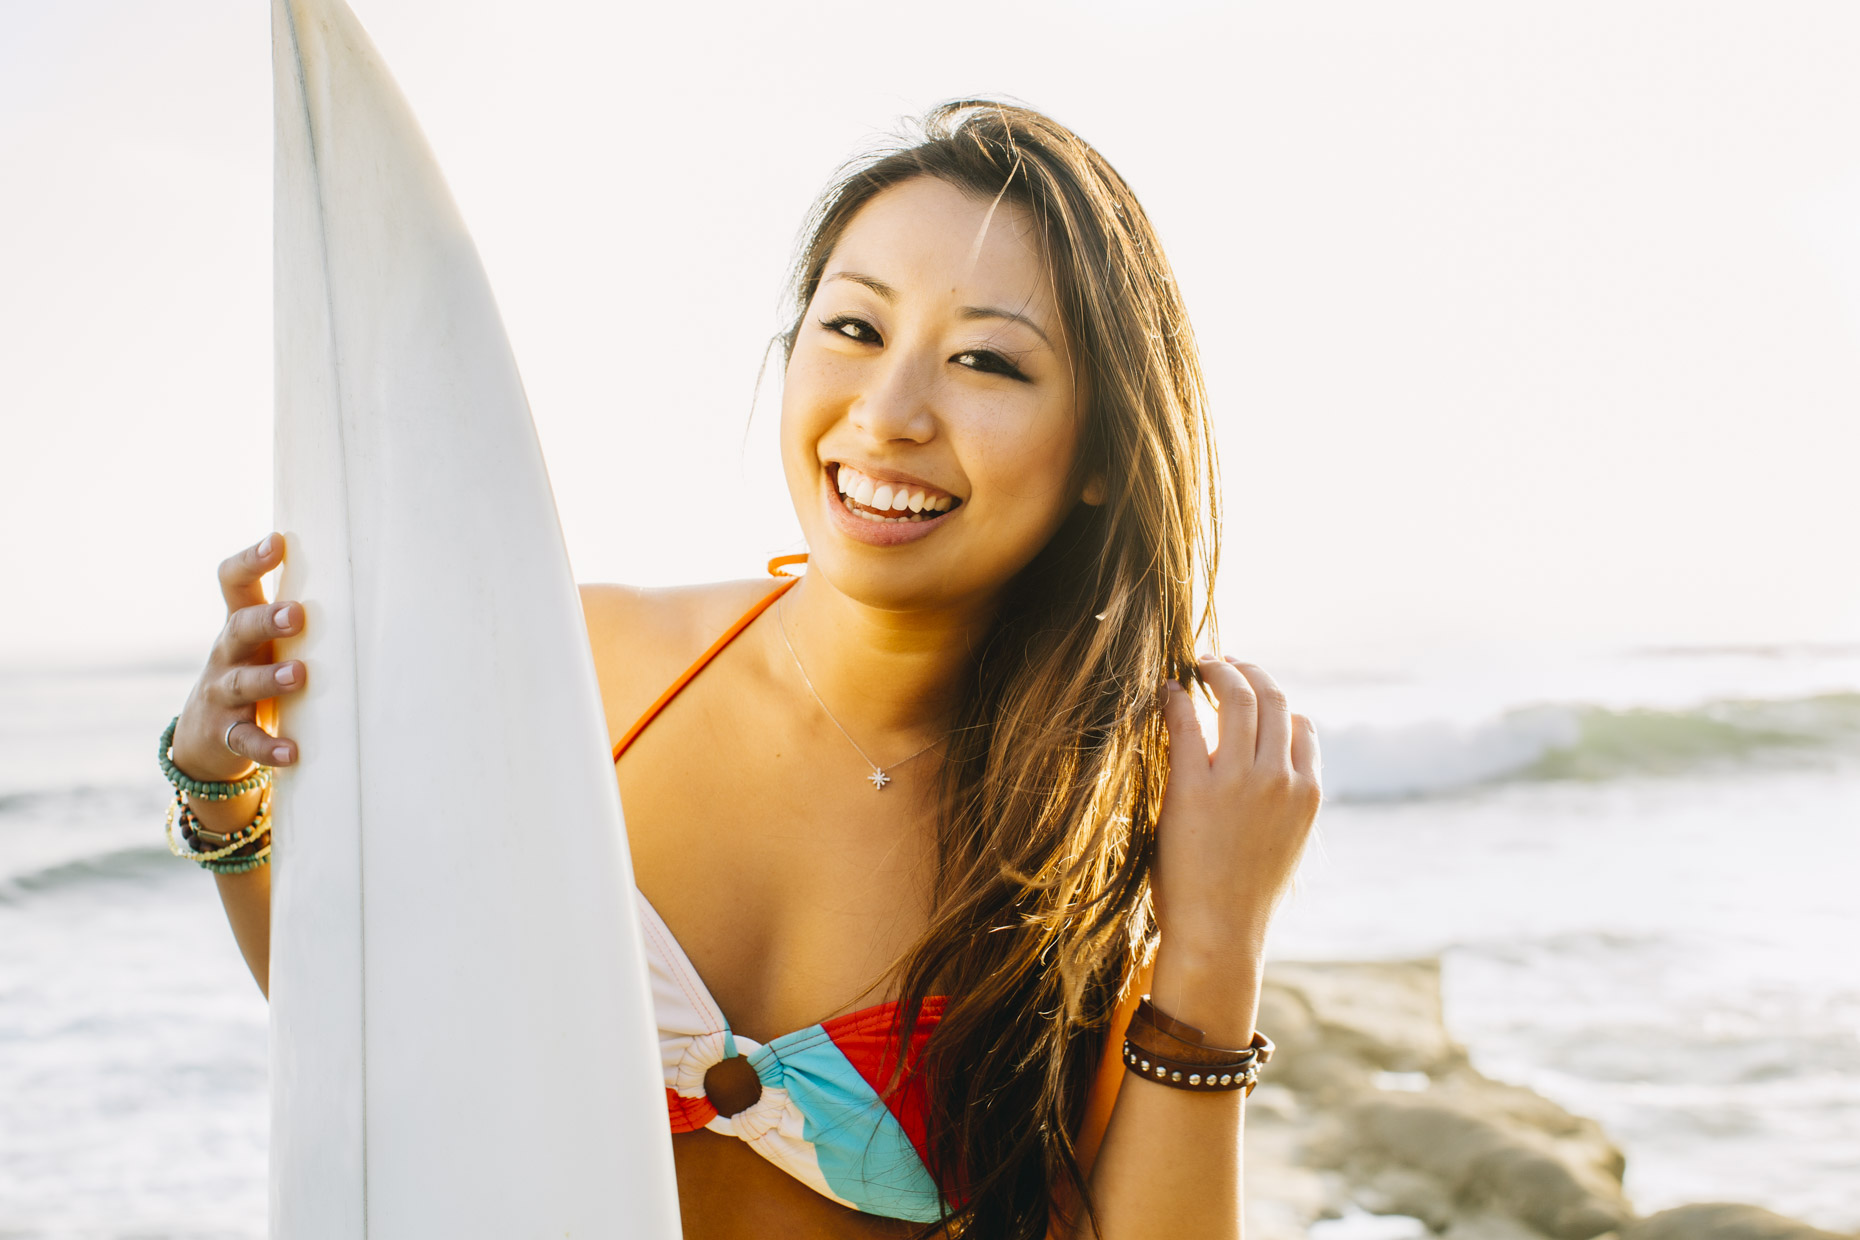 Smiling Asian woman in bikini at beach holding surfboard